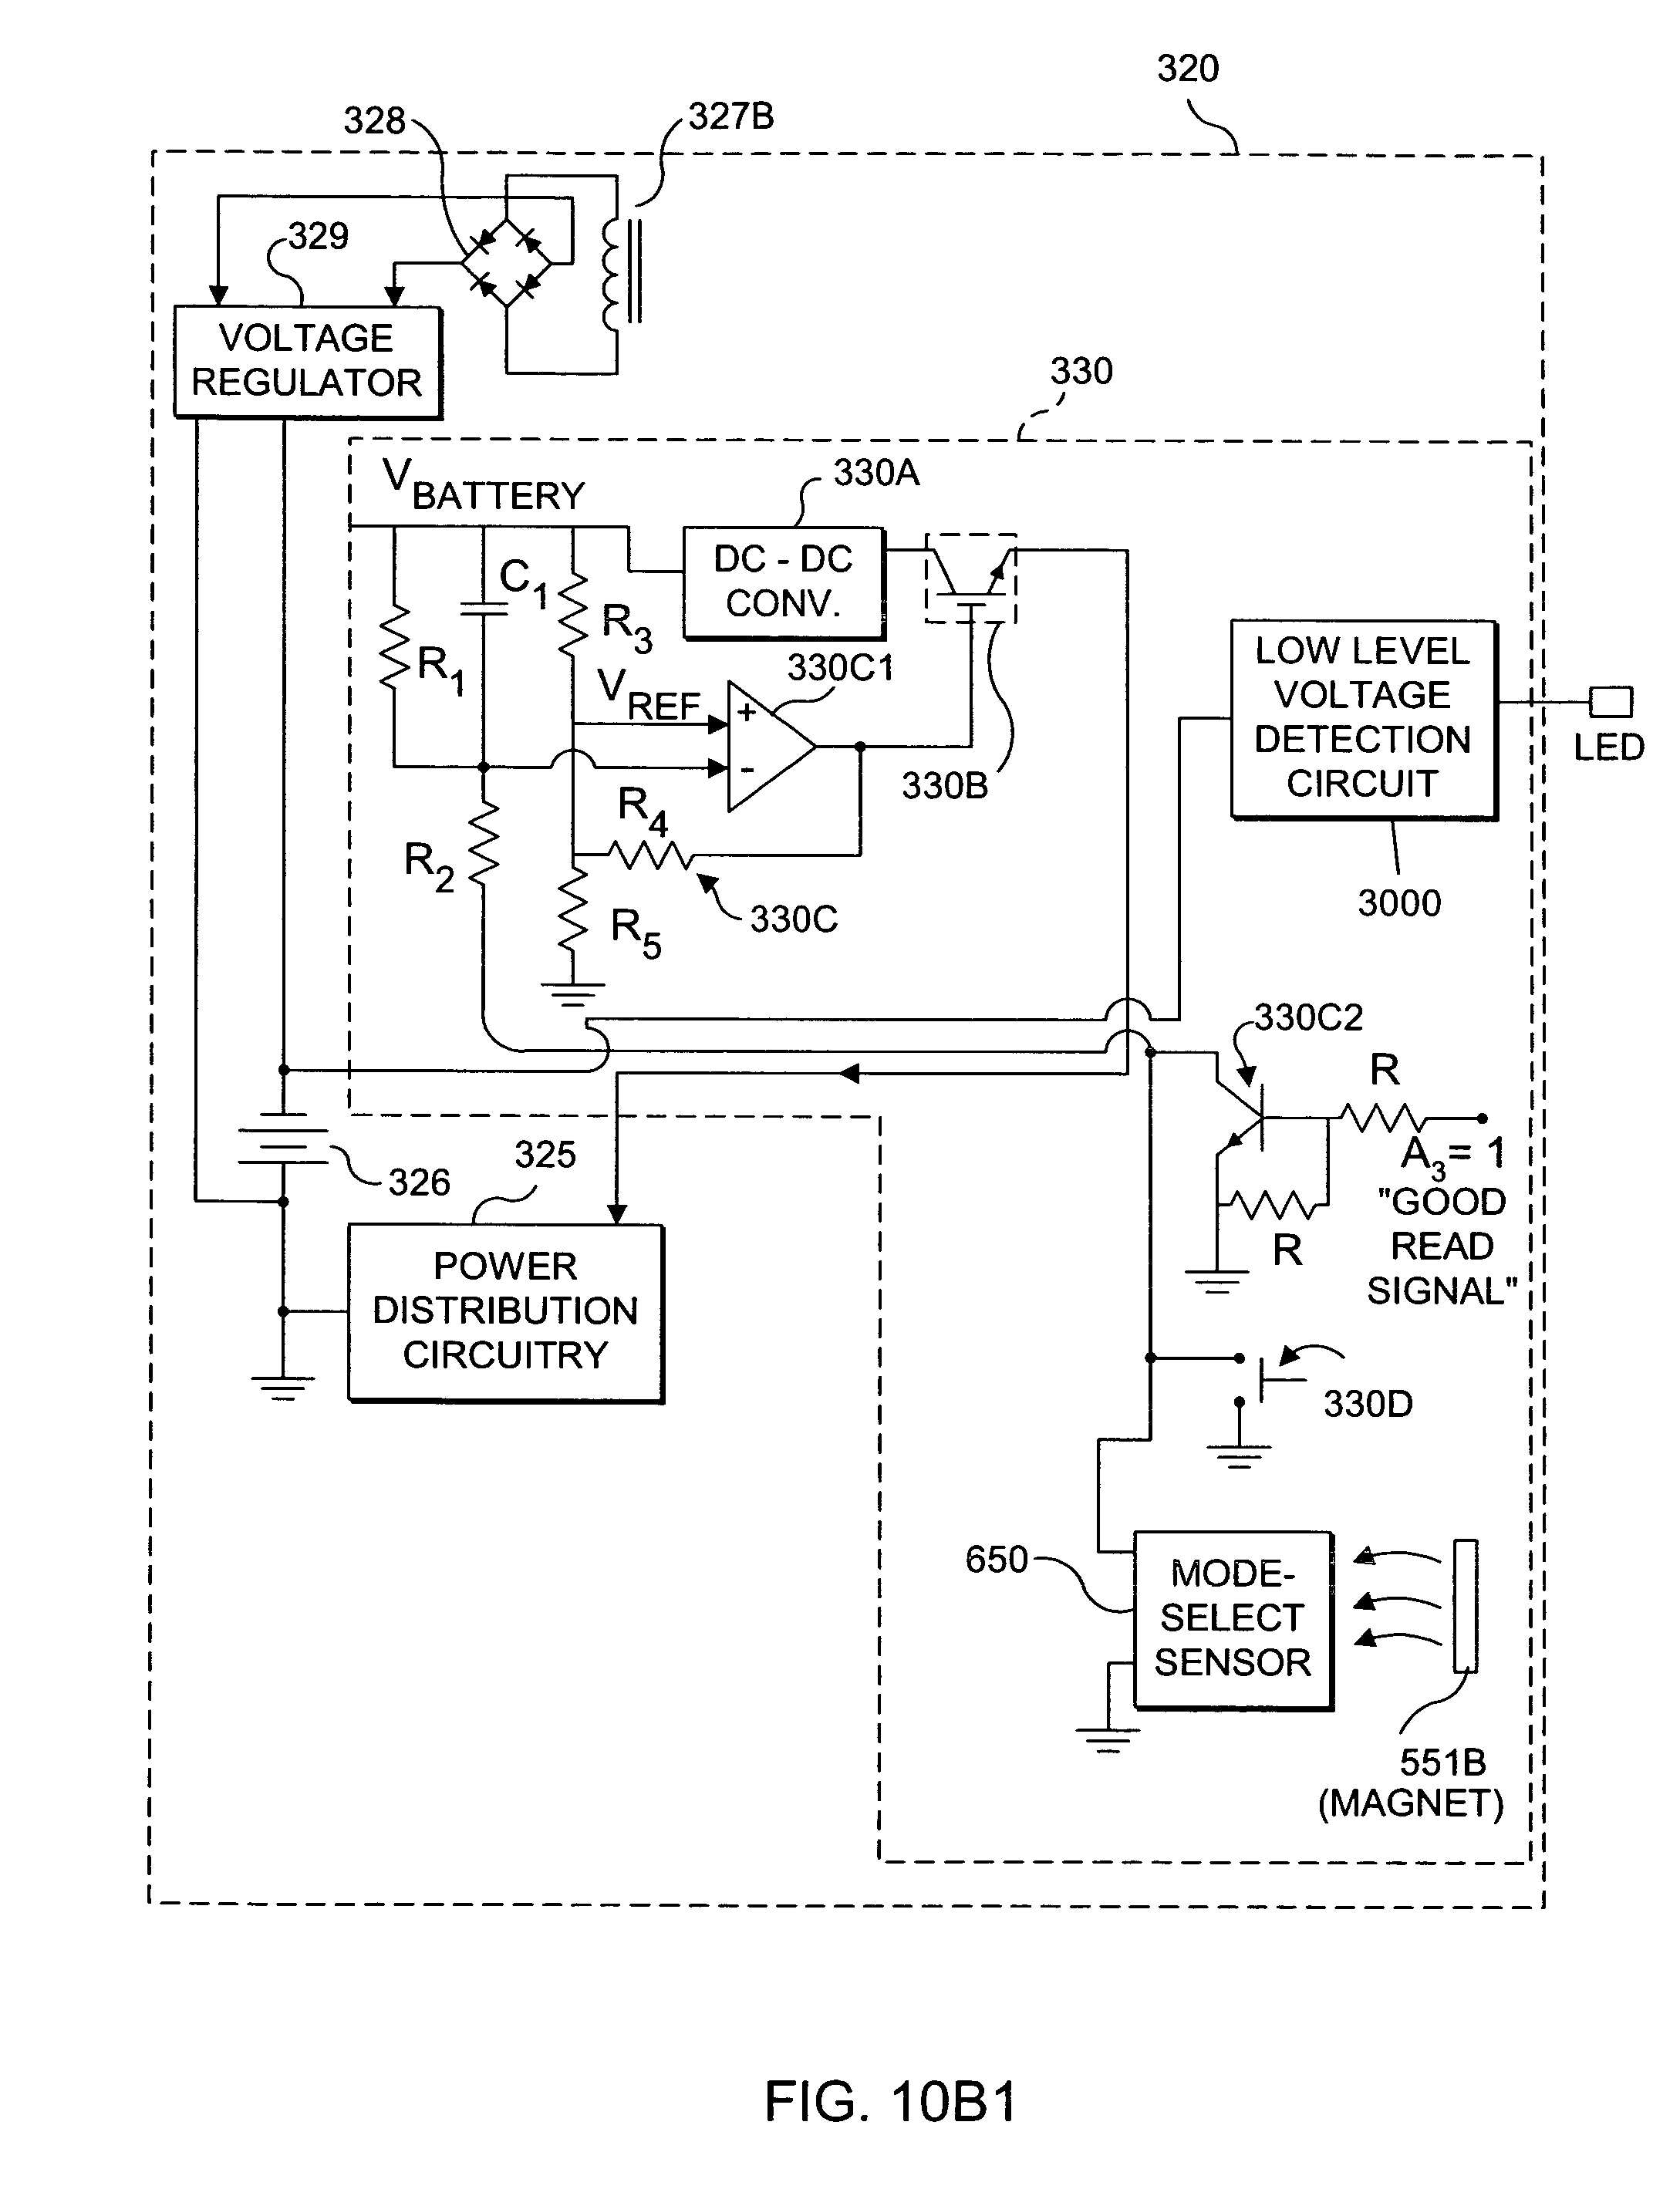 Patent Us 7464878 B2 Diagram Pto Switch Wiring 2 Dual Voice Coil Sub Wired For Images